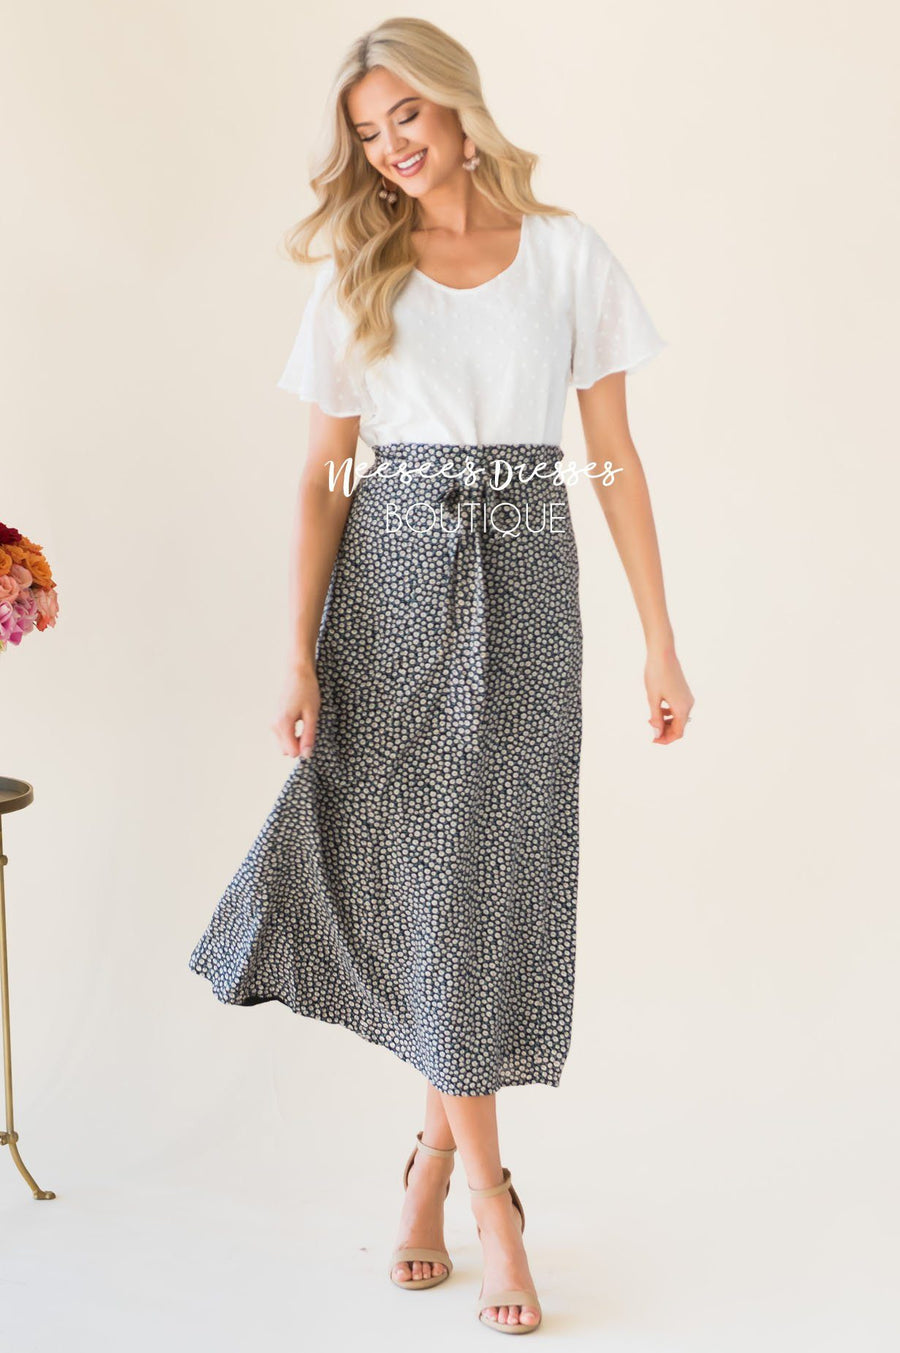 Darling Daisy Skirt